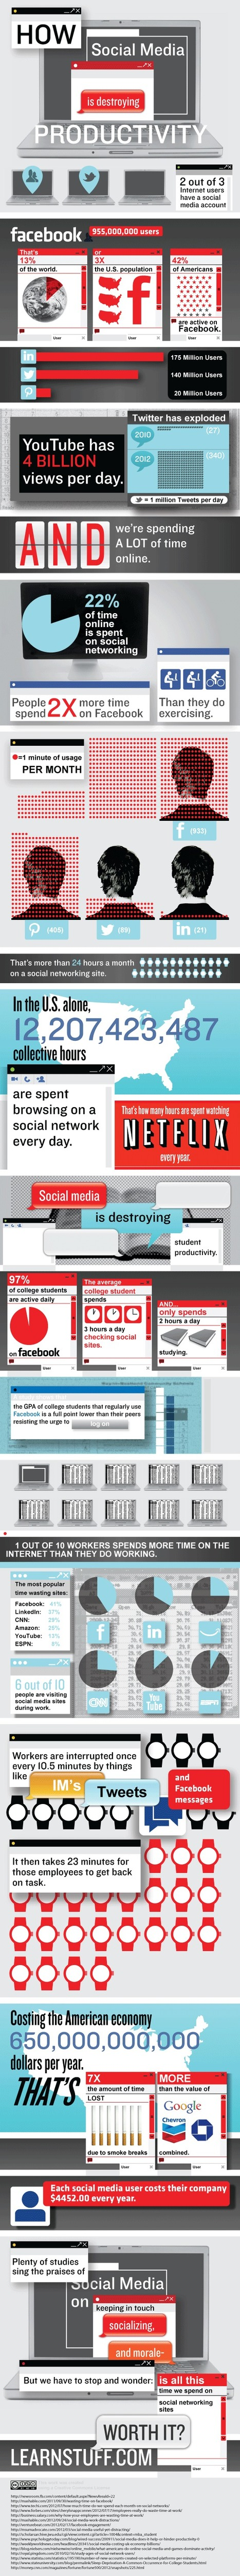 Social Media at Work [Infographic] | Social Media Savvy | Scoop.it